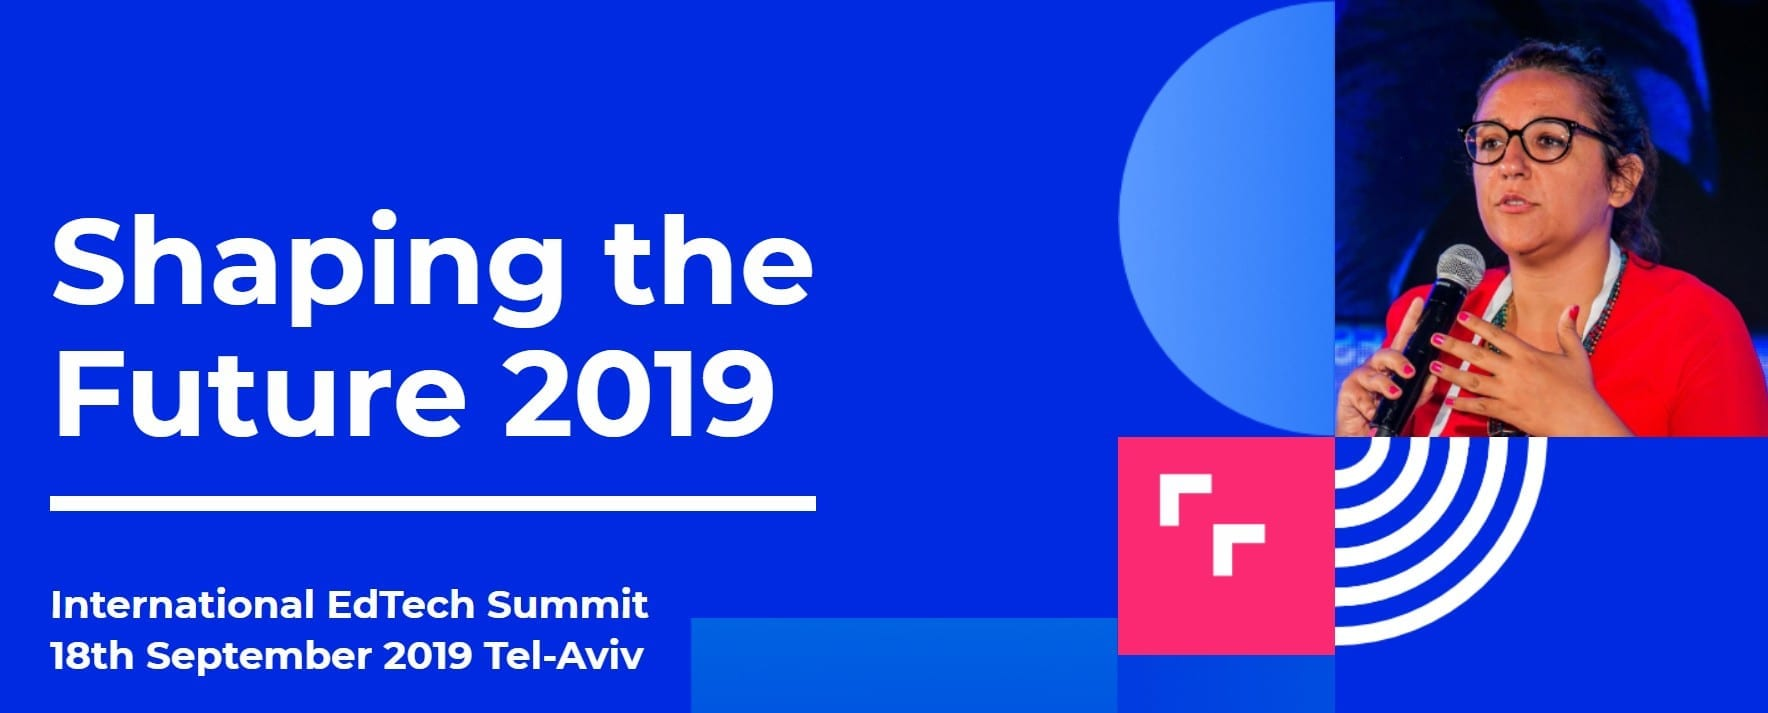 shaping the future 2019